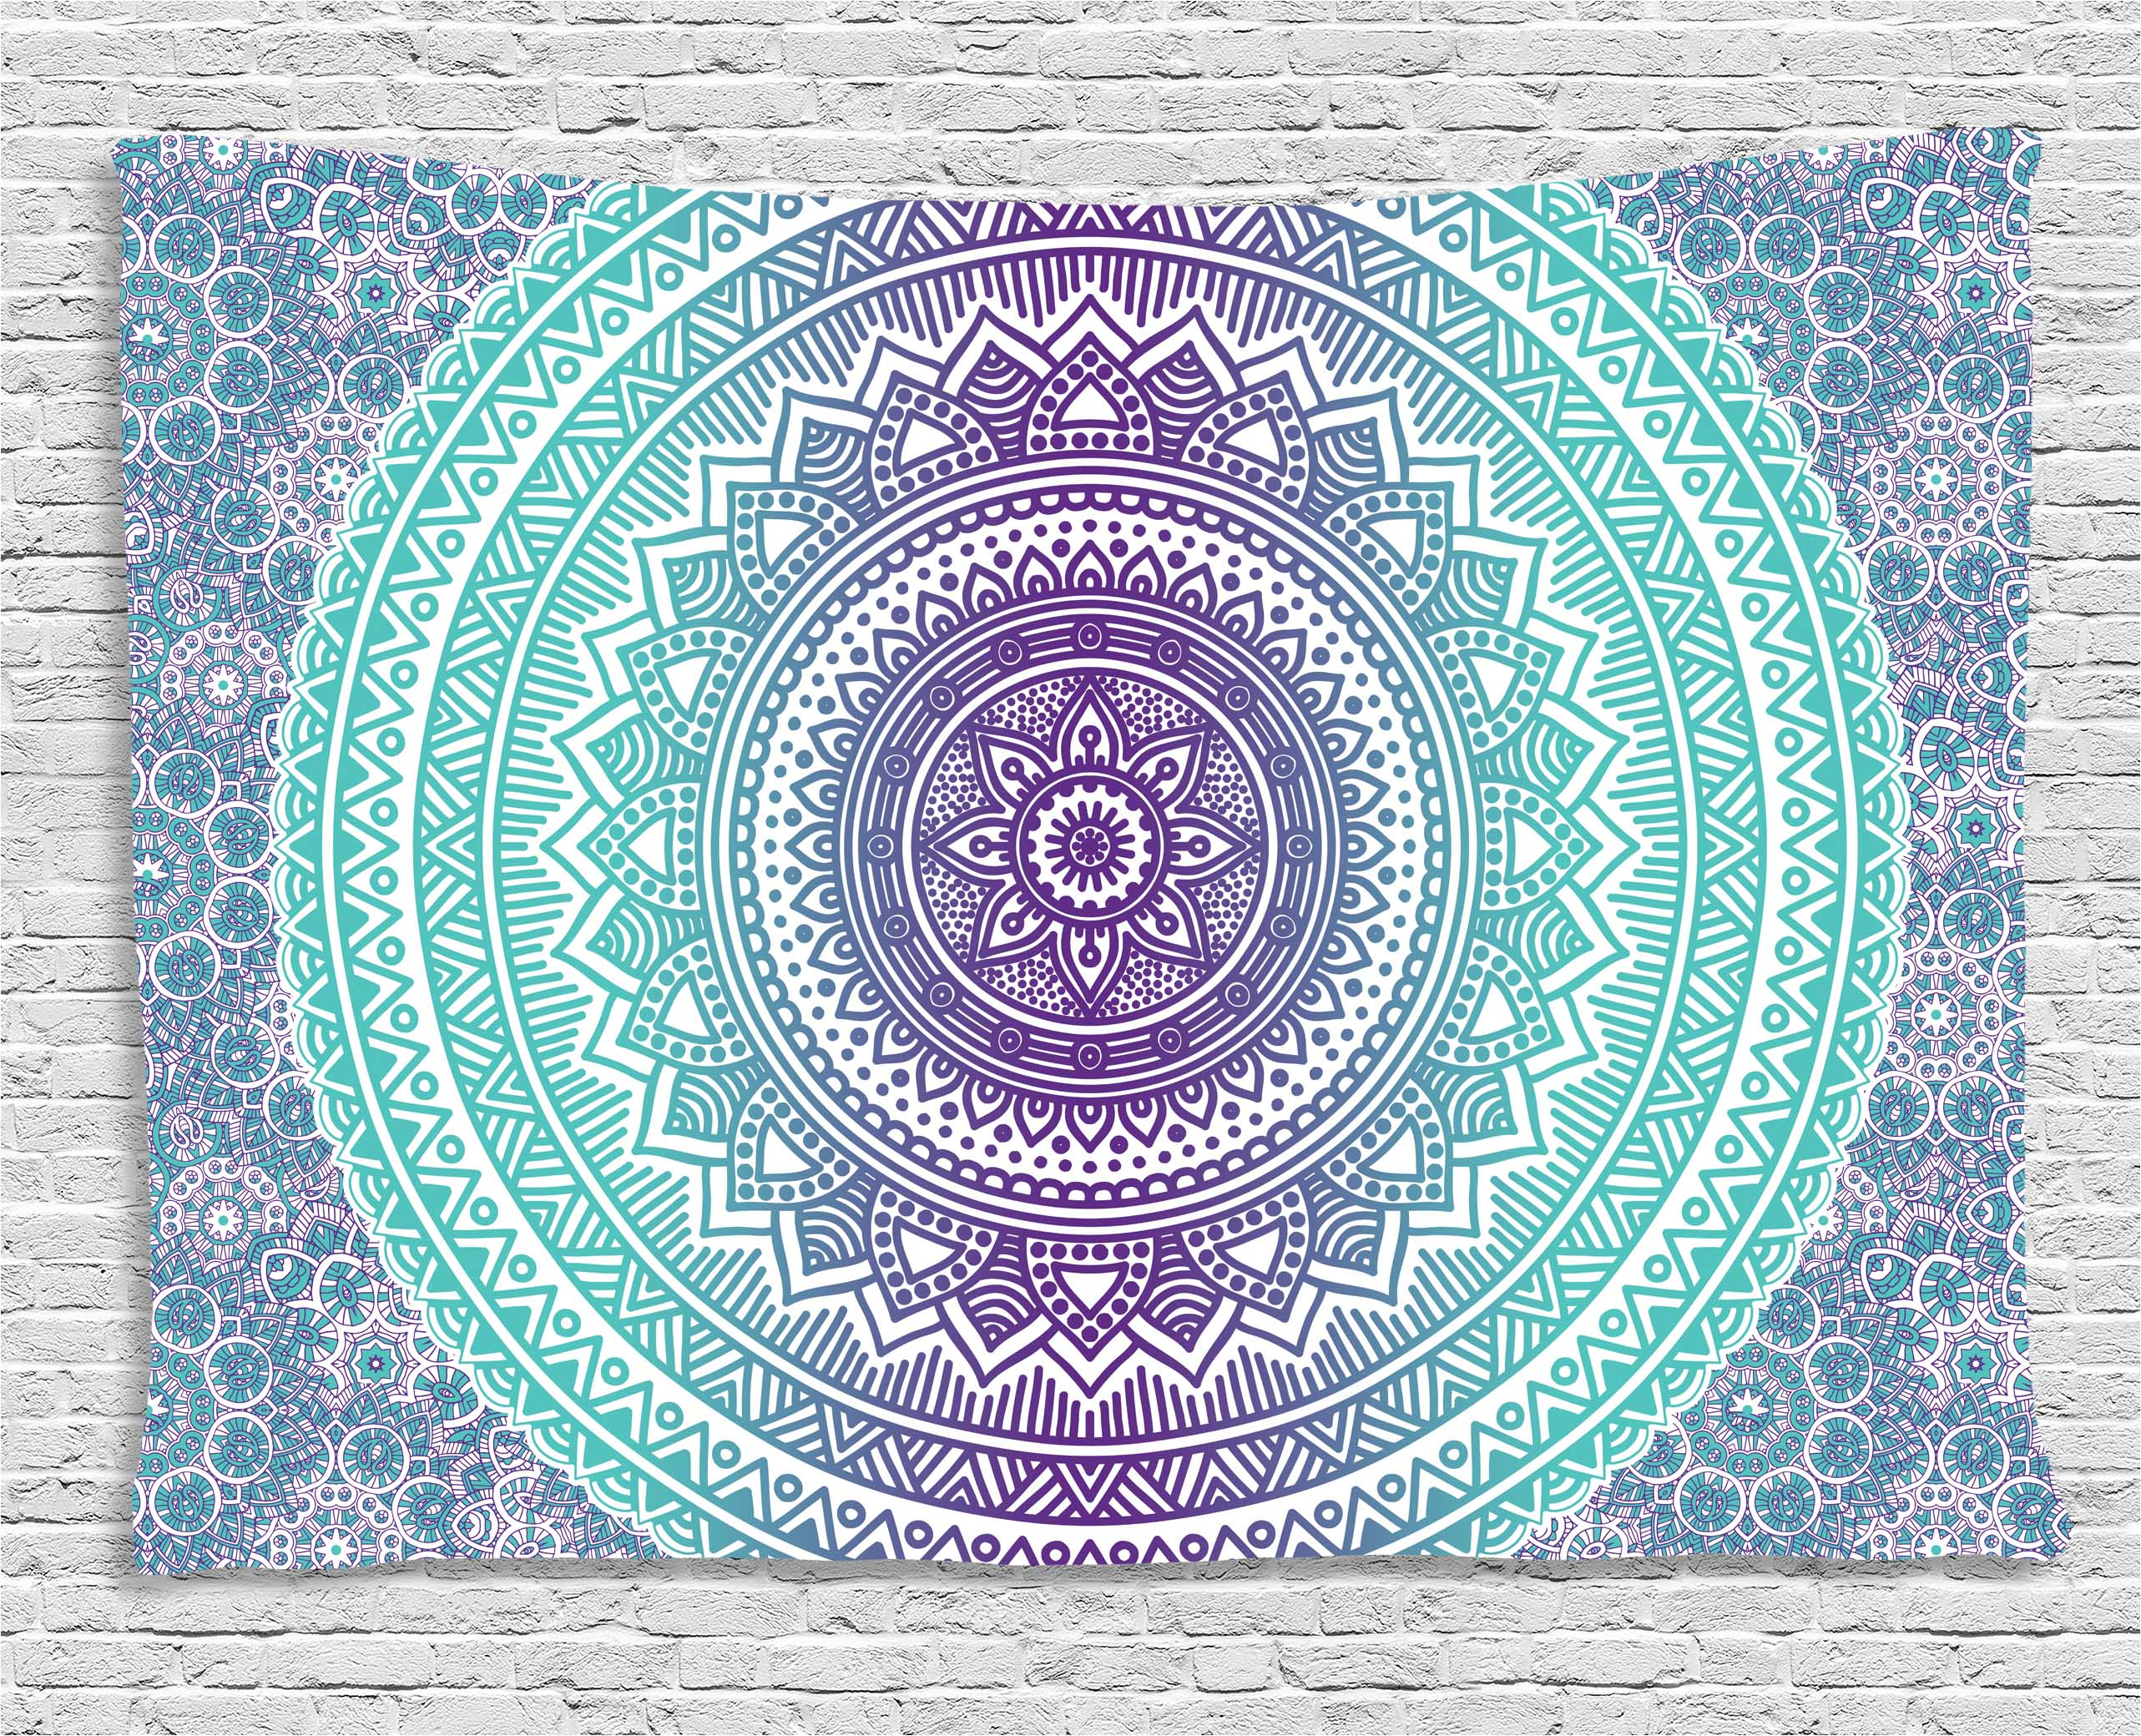 Blue and Purple Tapestry, Mandala Ombre Eastern Mystic Abstract Old Fashion Bohemian Native Cosmos Art, Wall Hanging for... by Kozmos